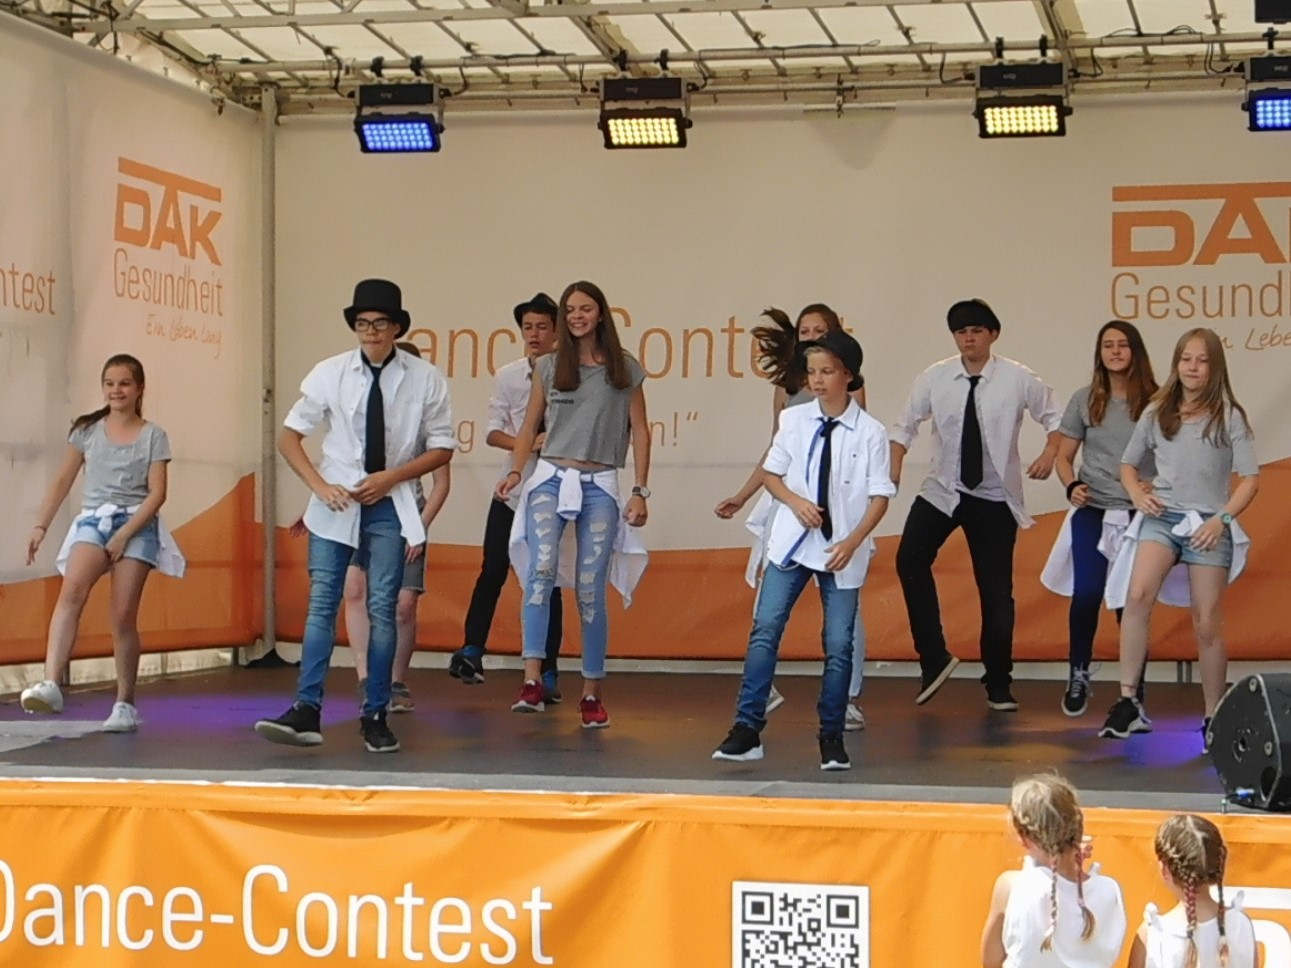 DAK Dancecontest